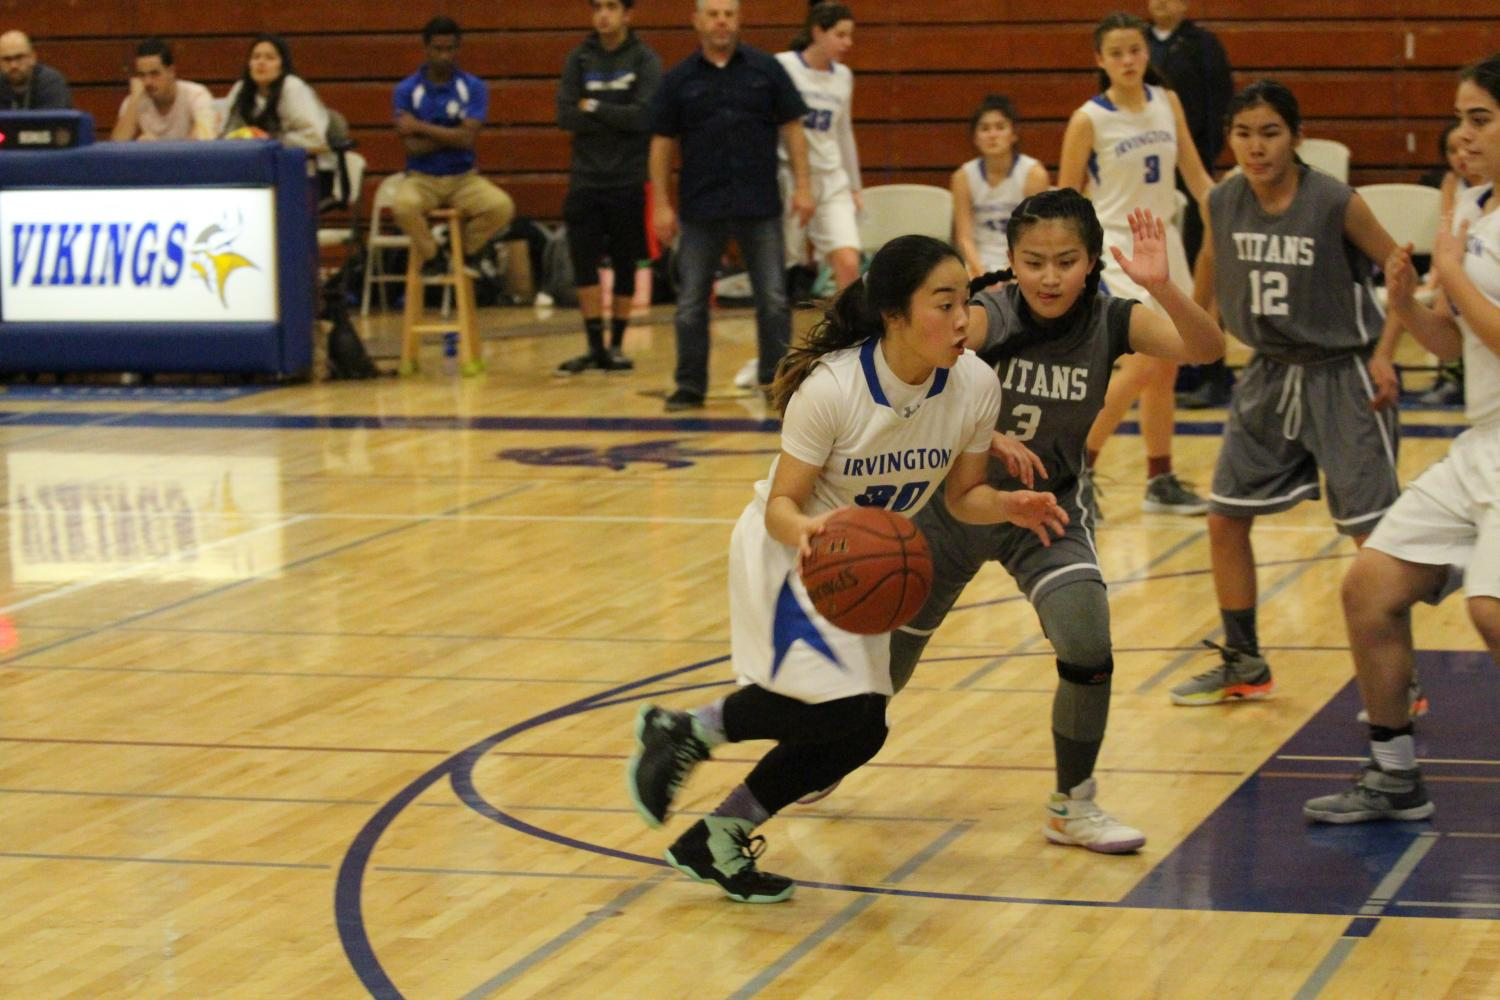 The+Kennedy+Titans+players+crowd+around+JV+Basketball+player+Kaitlyn+Kodama+%289%29+as+she+attempts+to+score+a+basket.